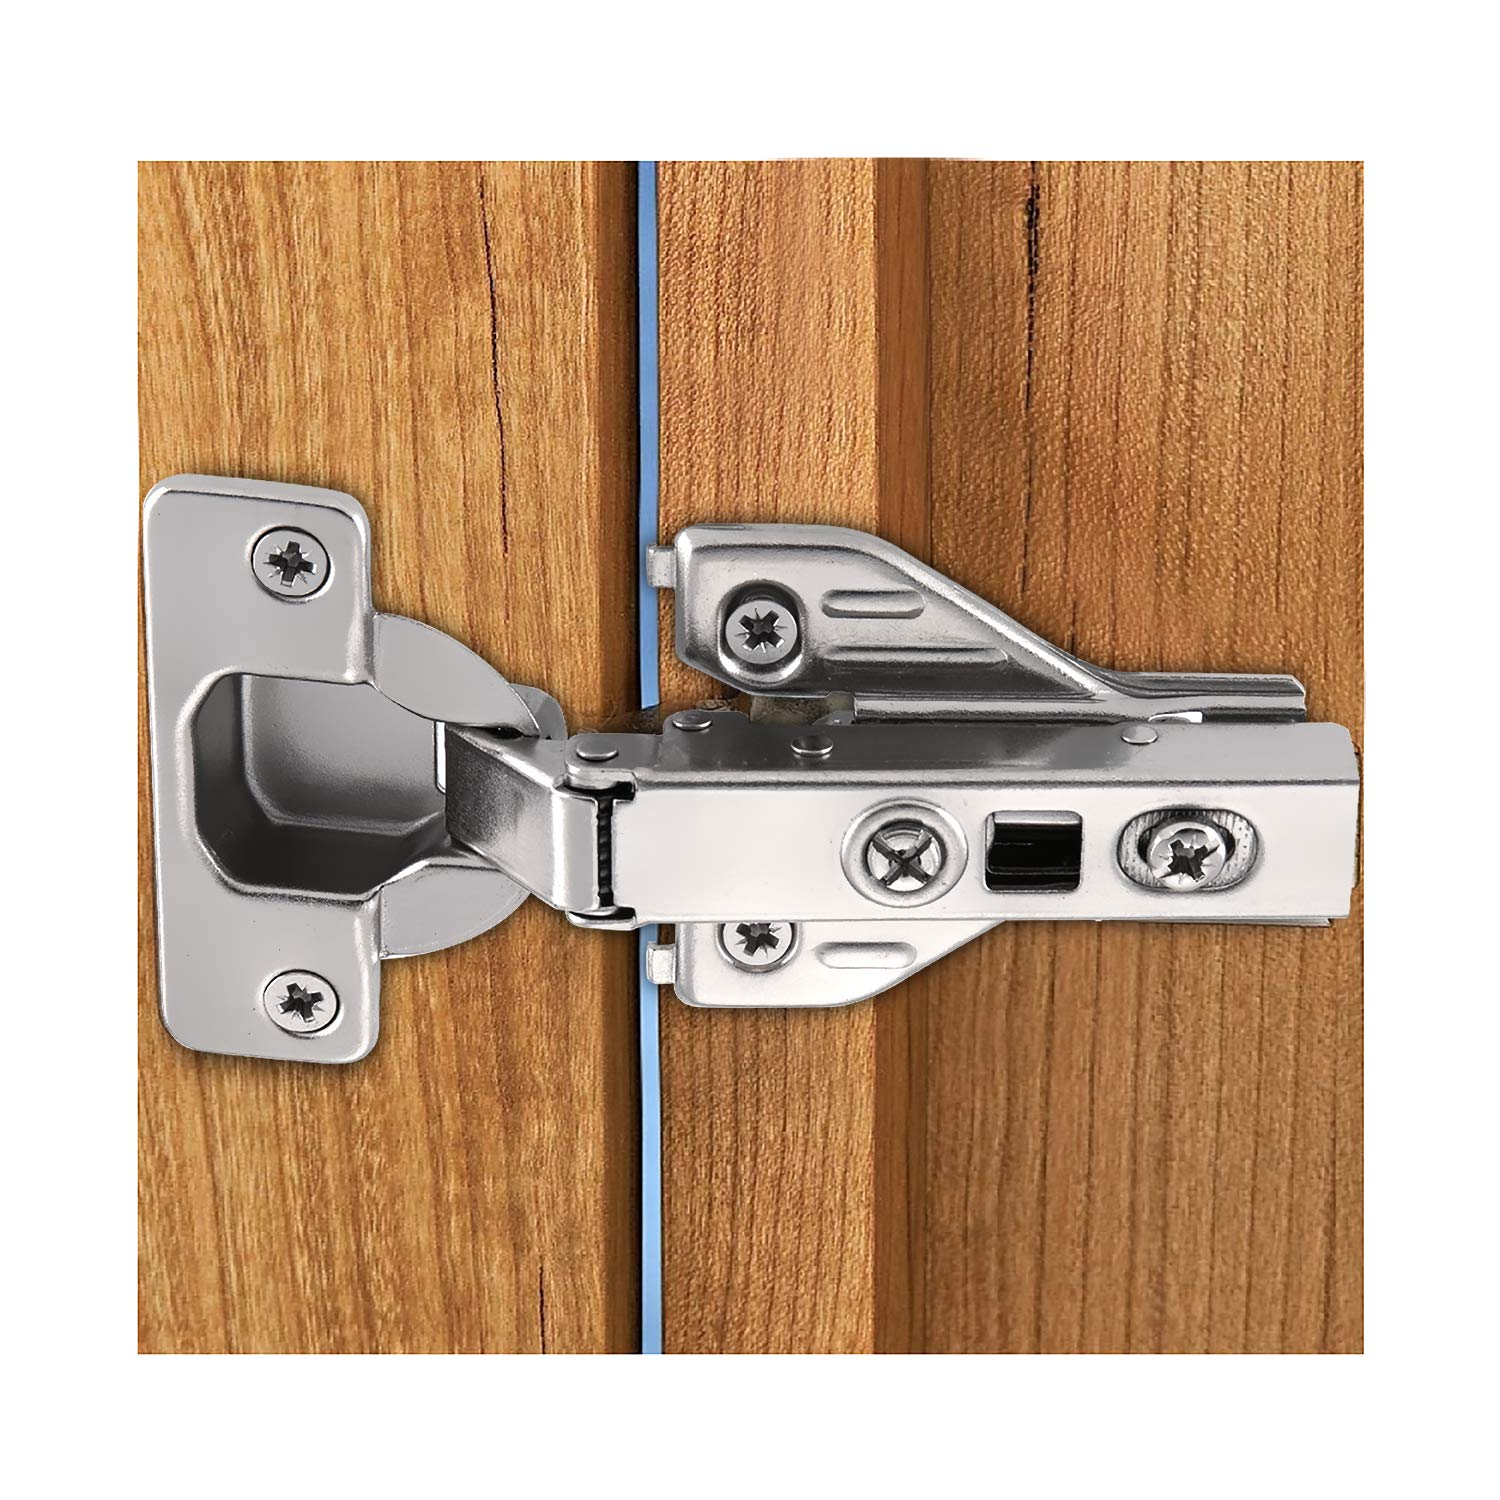 Luokim 4pcs Soft Opening Face Frame Mounting Concealed Hinges,Full Overlay,Kitchen Cabinet Door Hinges,Nickel Finish